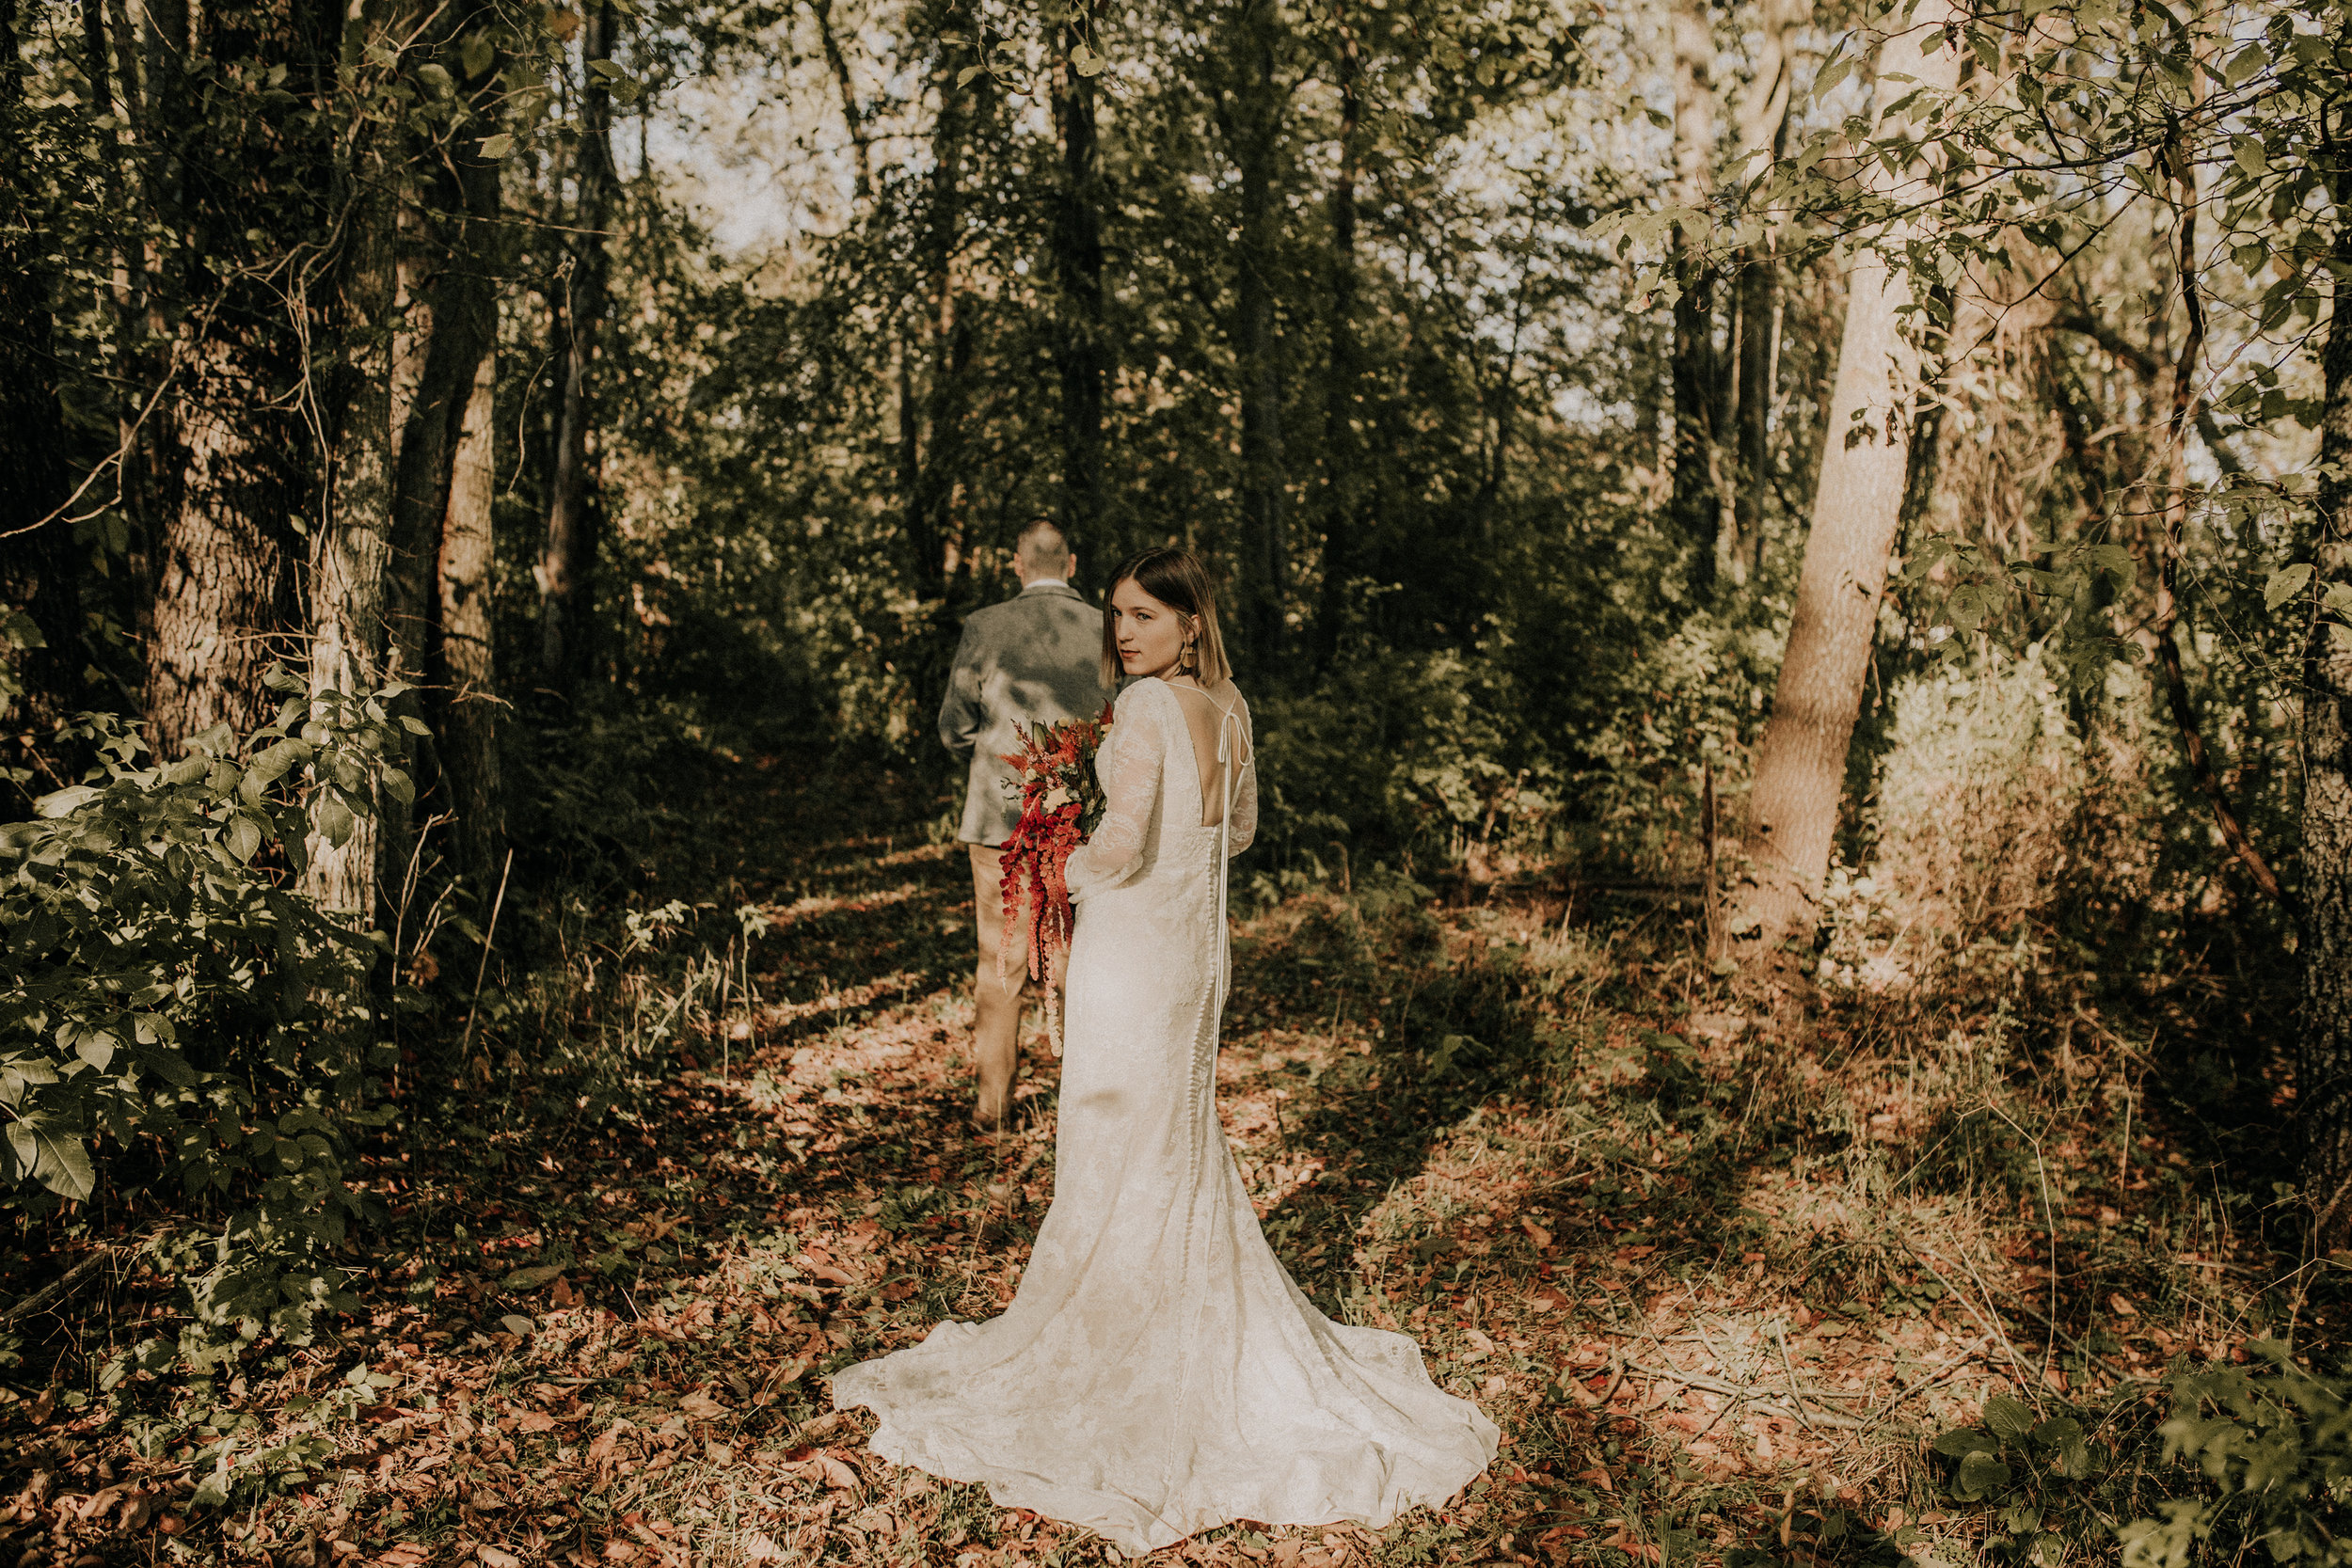 .Destination wedding photographer Cassandra Michelle Photography